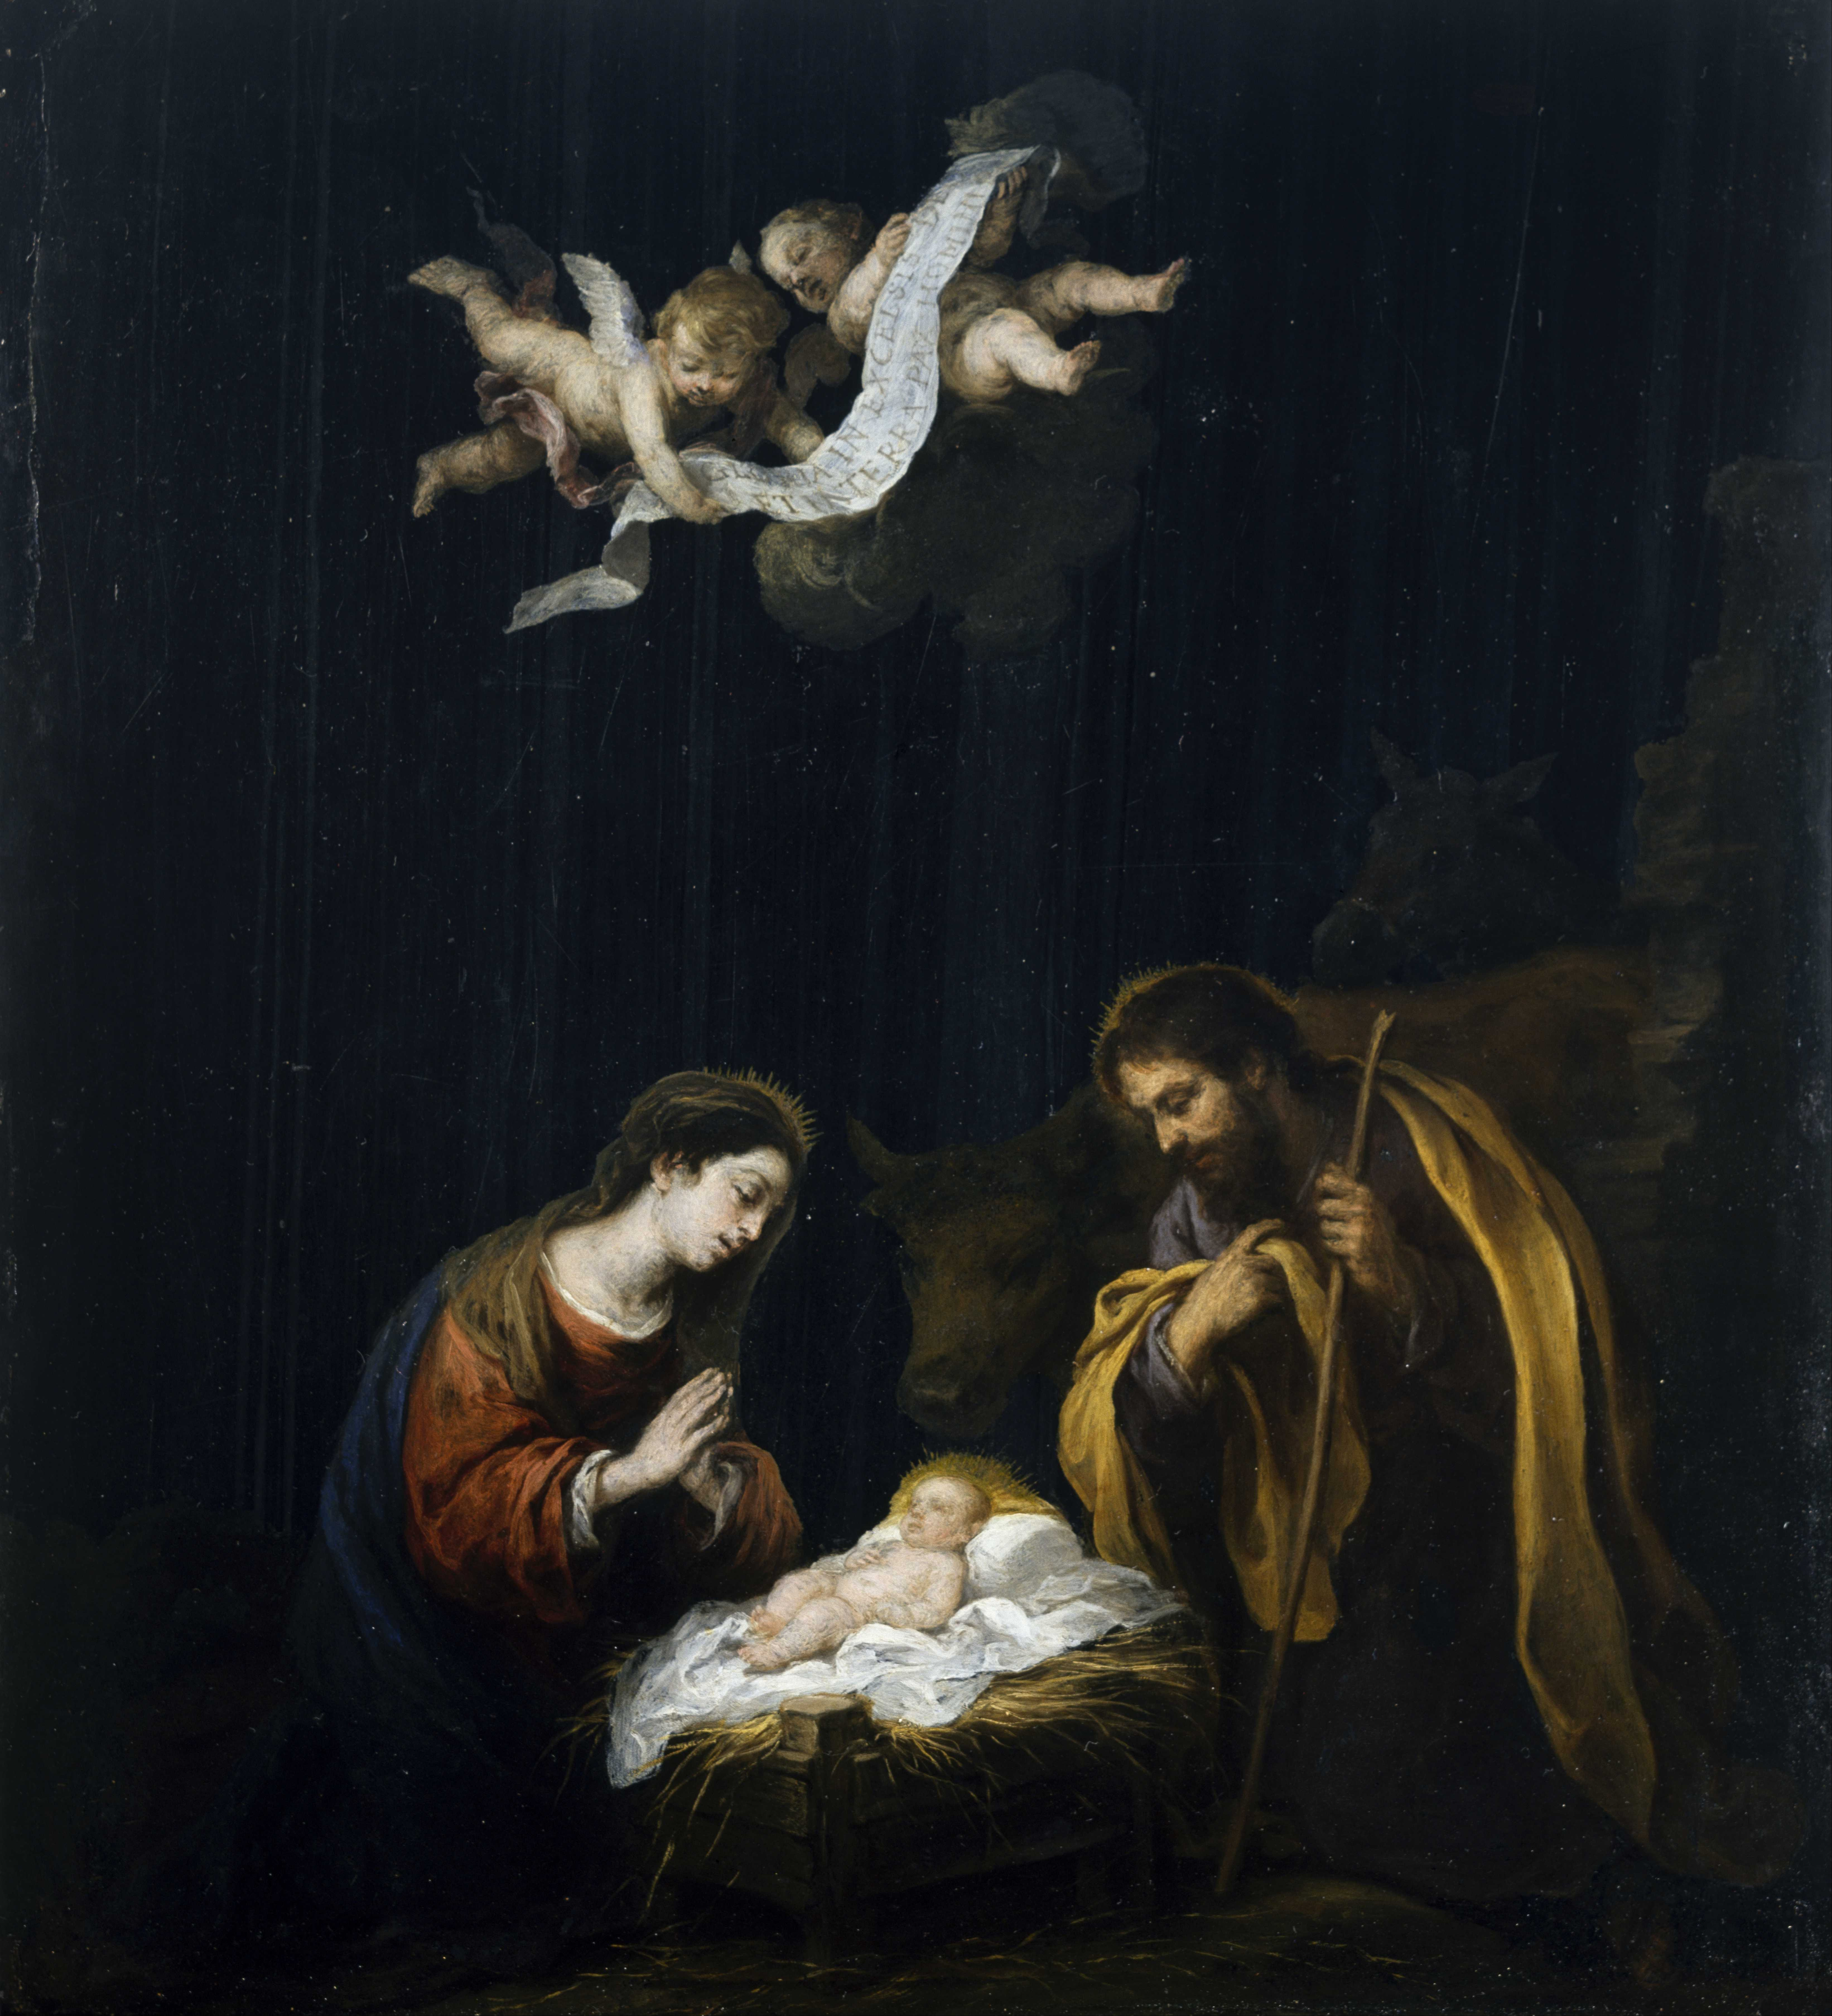 ... :Bartolomé Esteban Murillo - The Nativity - Google Art Project.jpg